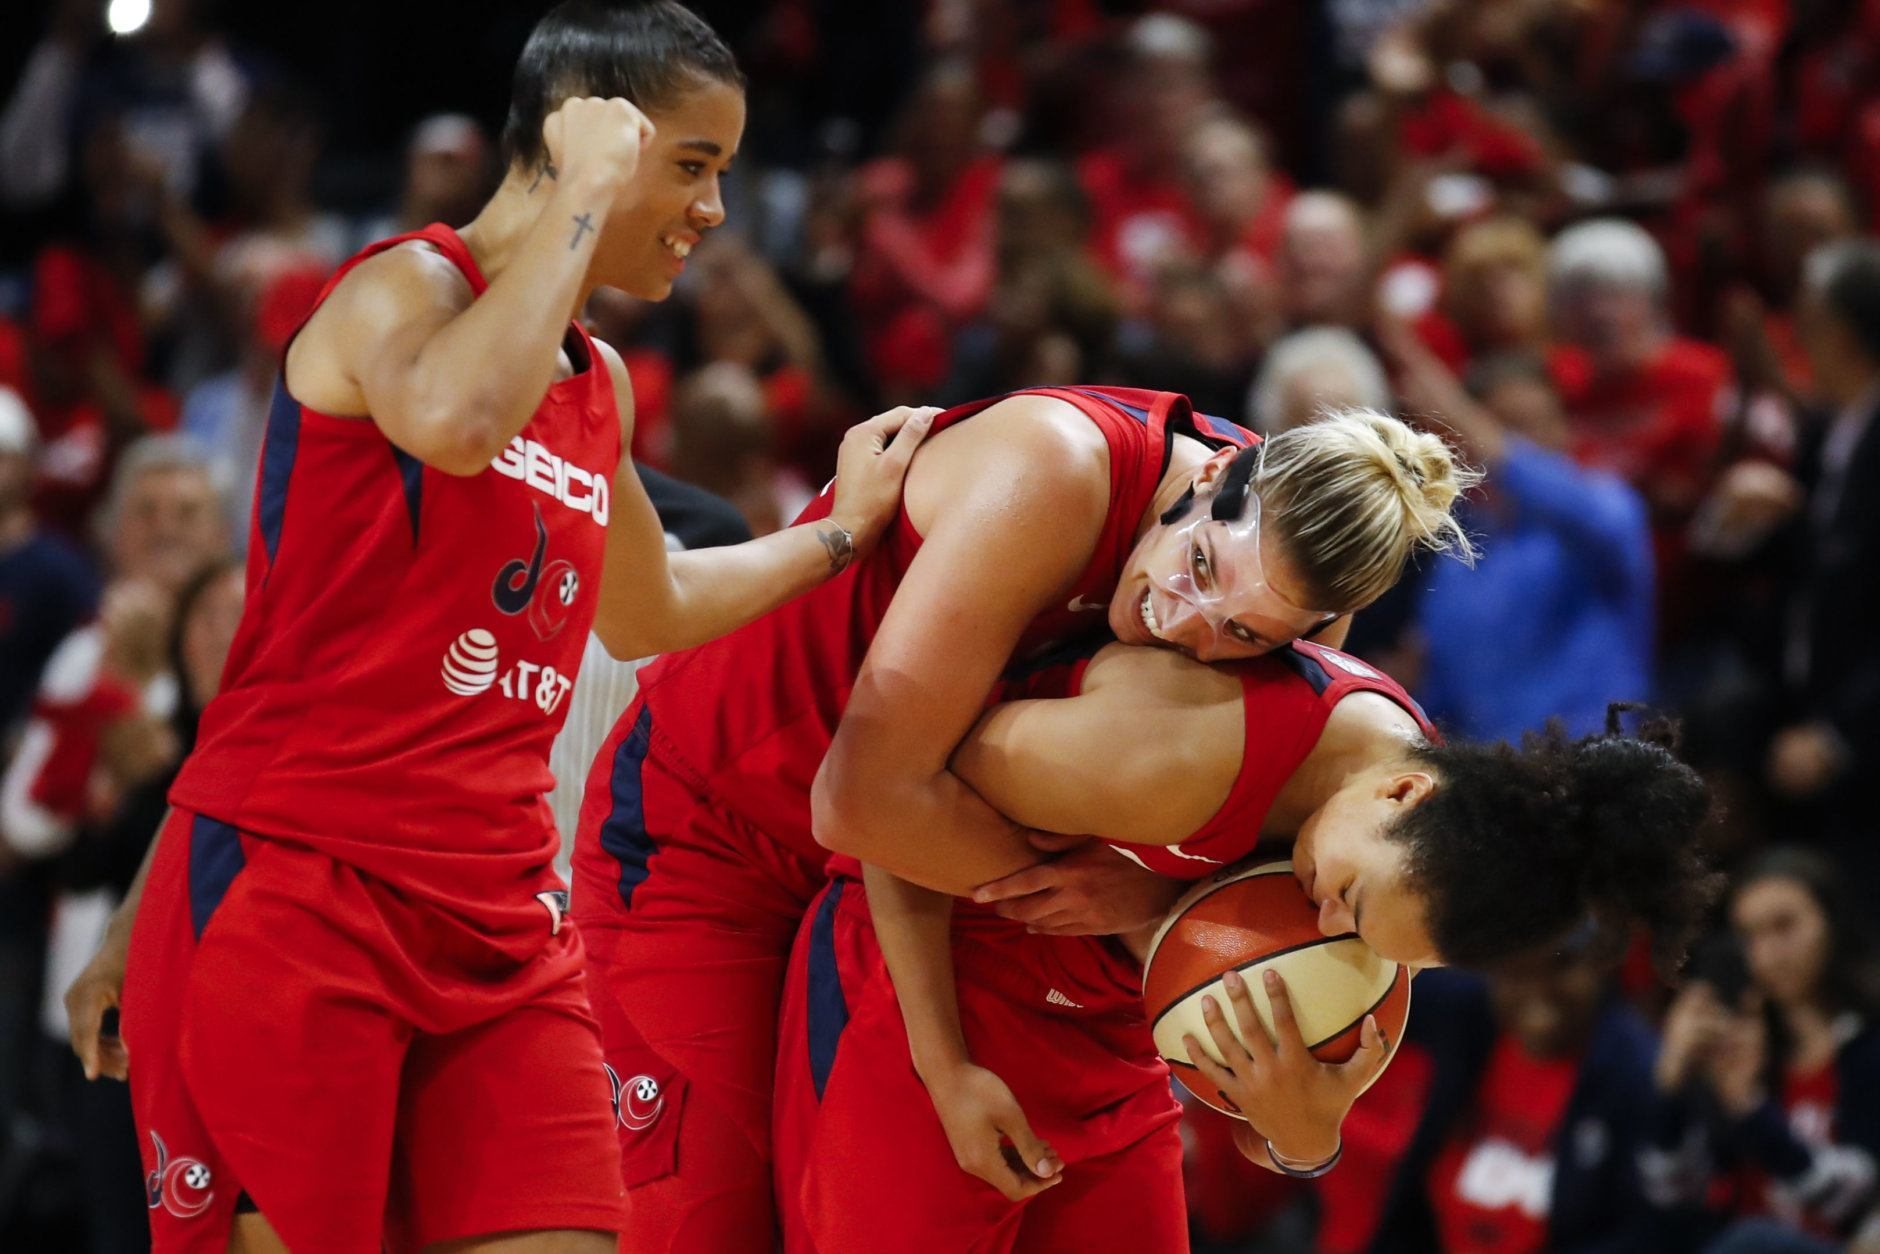 Washington Mystics guard Natasha Cloud, left, forward Elena Delle Donne and guard Kristi Toliver celebrate during the second half of Game 5 of basketball's WNBA Finals, Thursday, Oct. 10, 2019, in Washington.  (AP Photo/Alex Brandon)